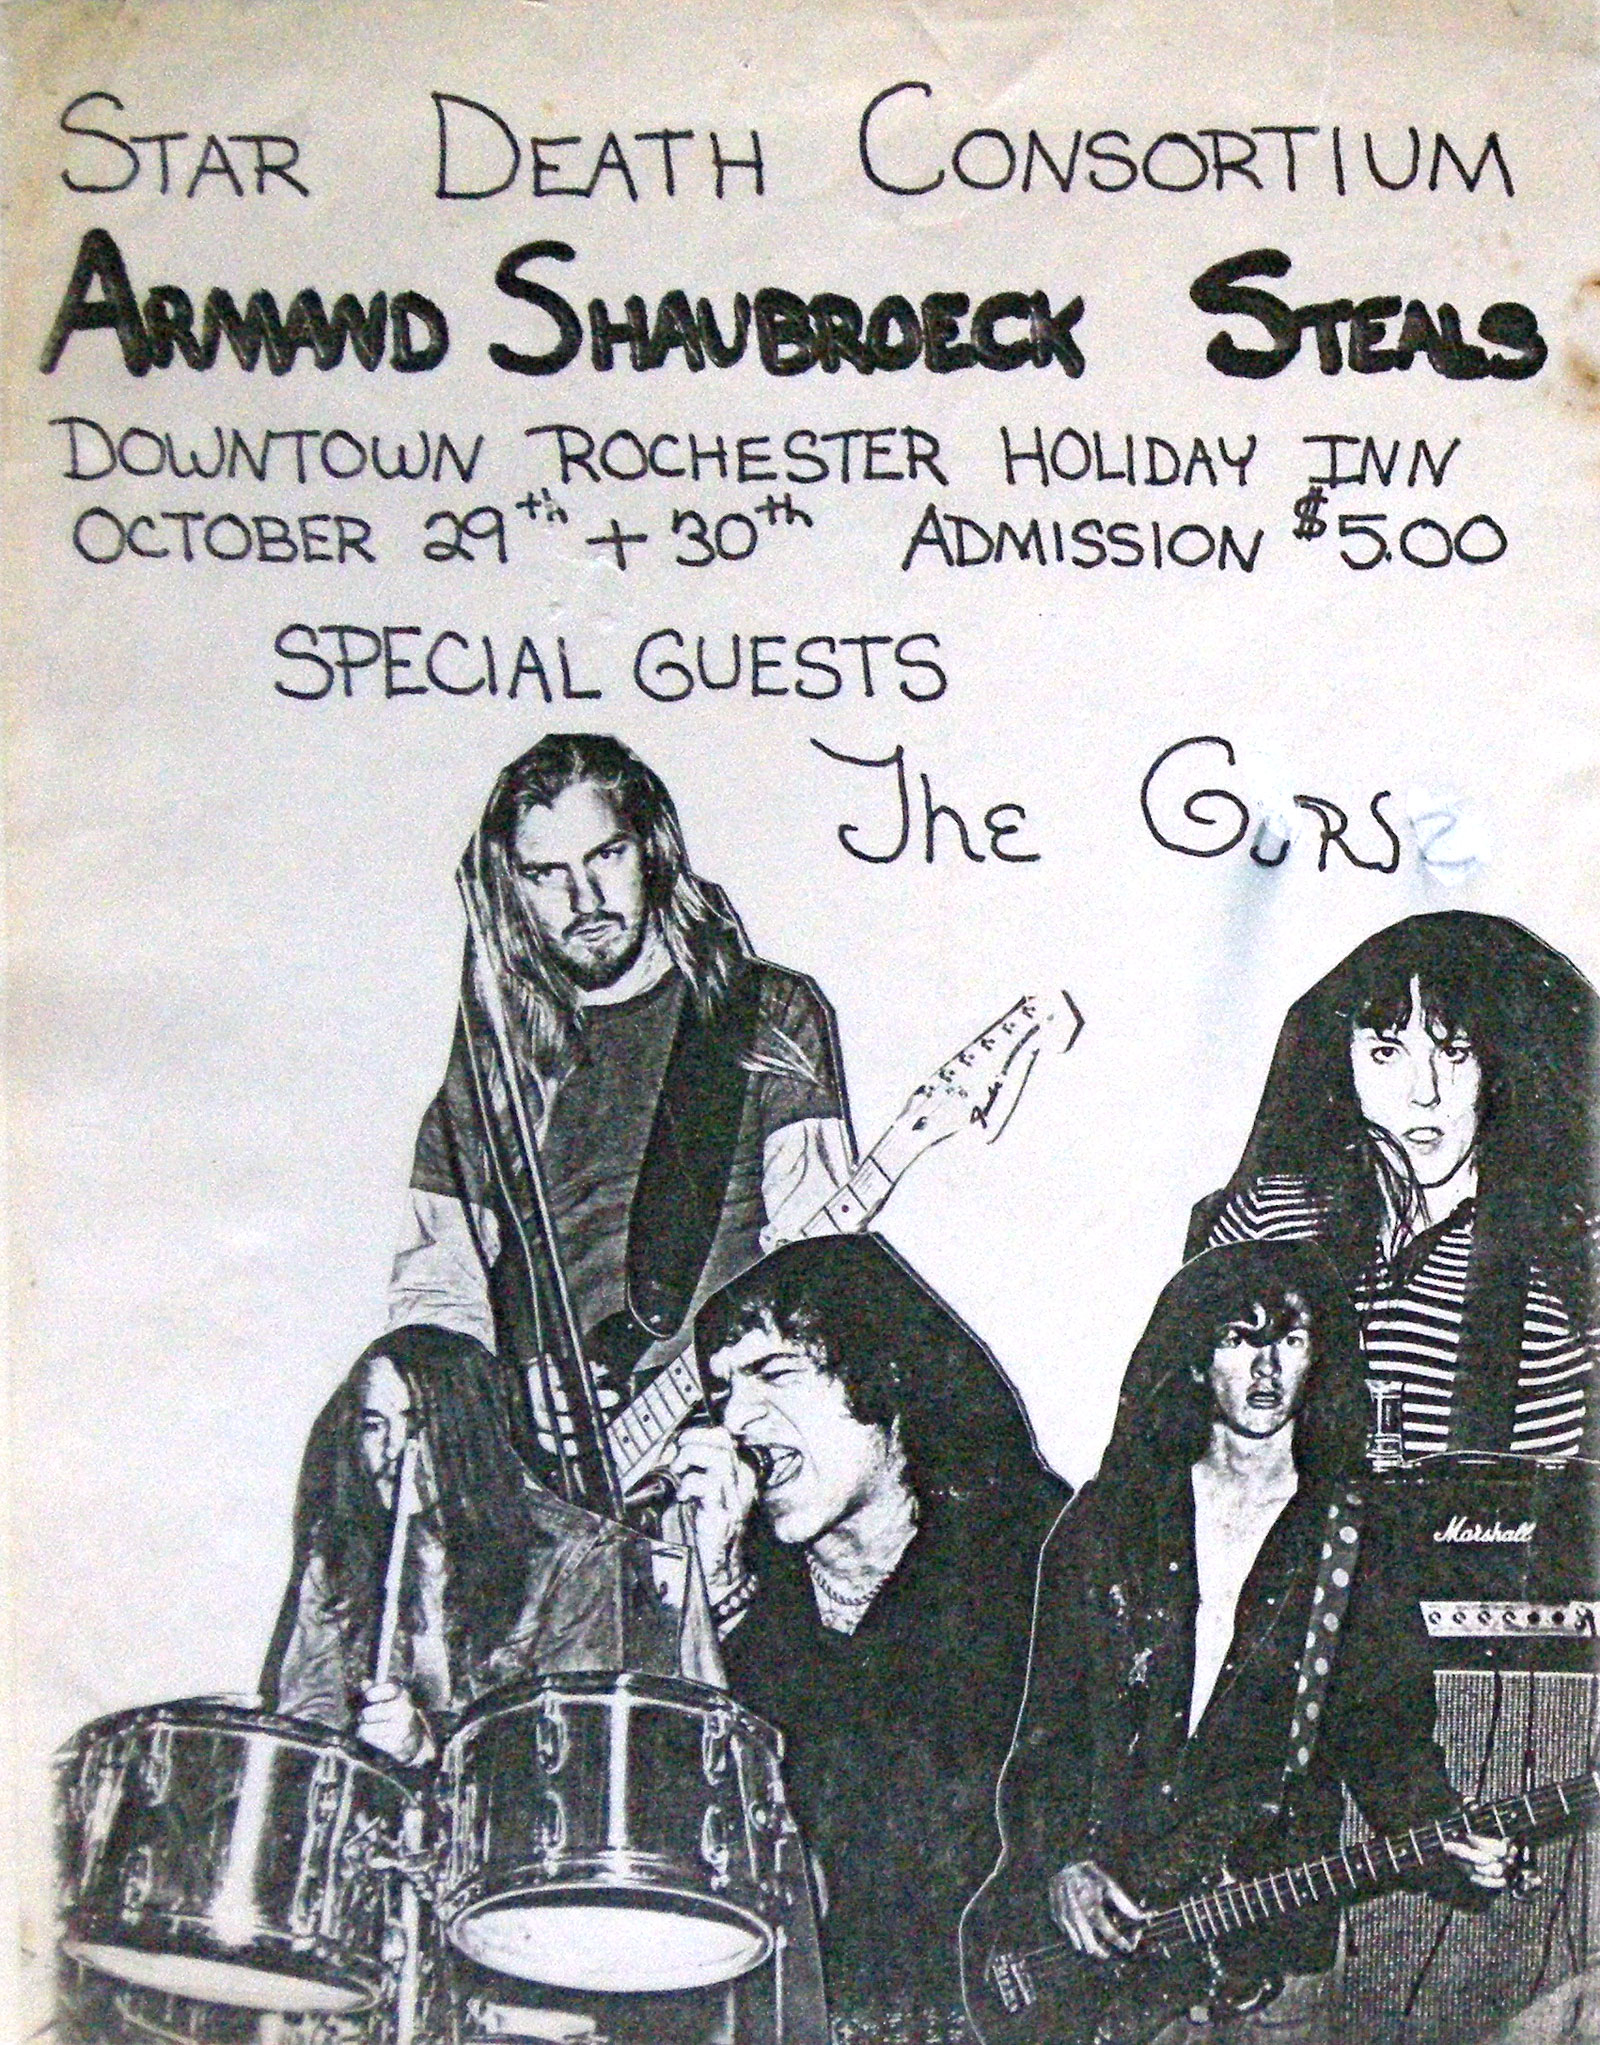 "Armand Shaubroeck Steals ""Star Death Consortium"" at Holiday Inn in downtown Rochester, New York October 29 and 30, 1976"